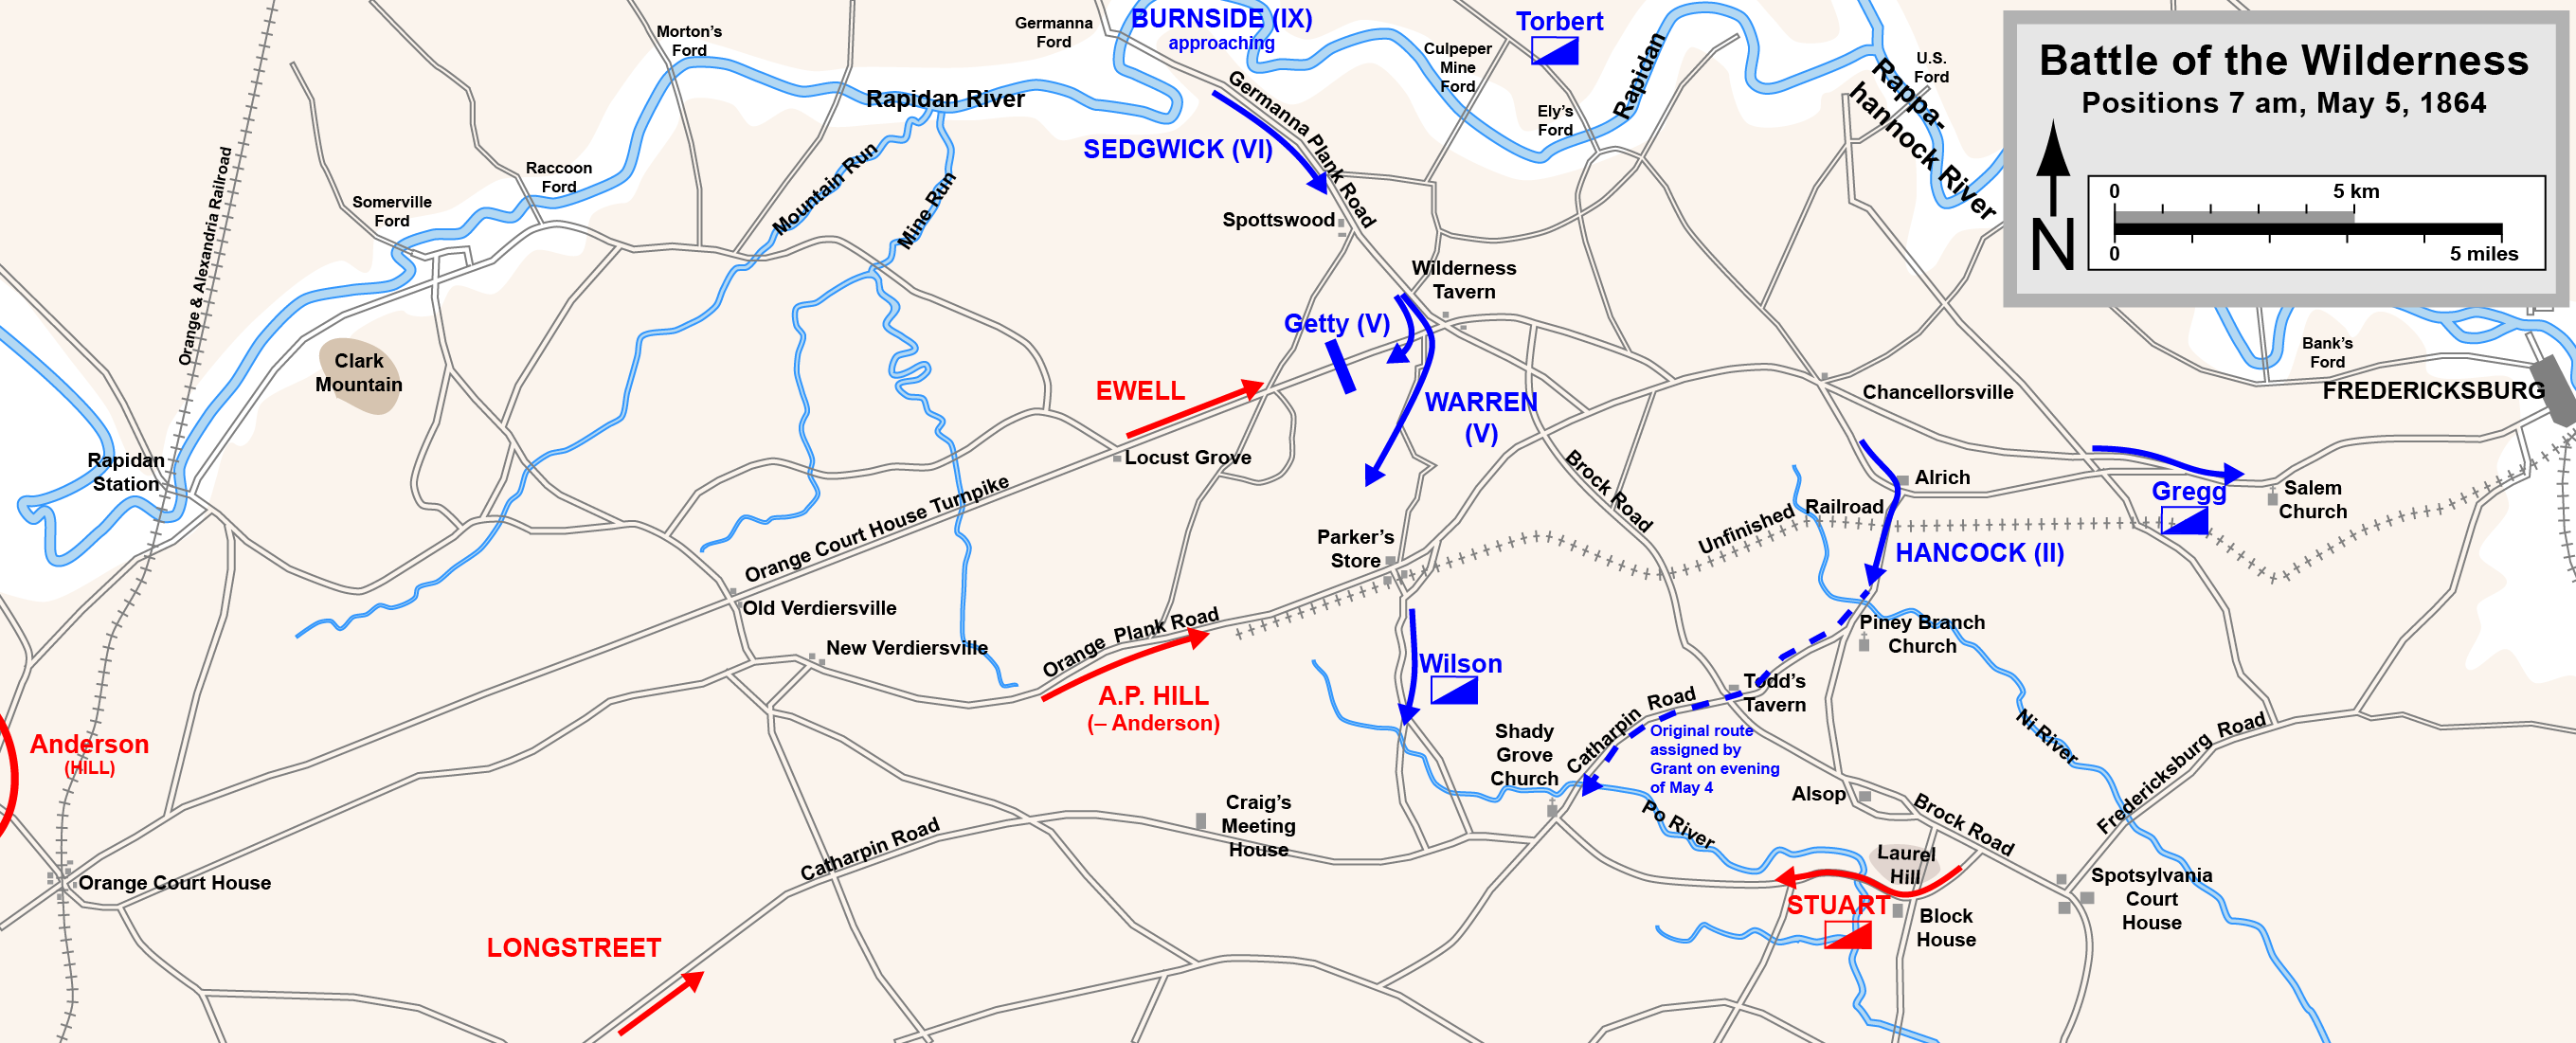 a look at the 1863 battlefield in the wilderness of spotsylvania